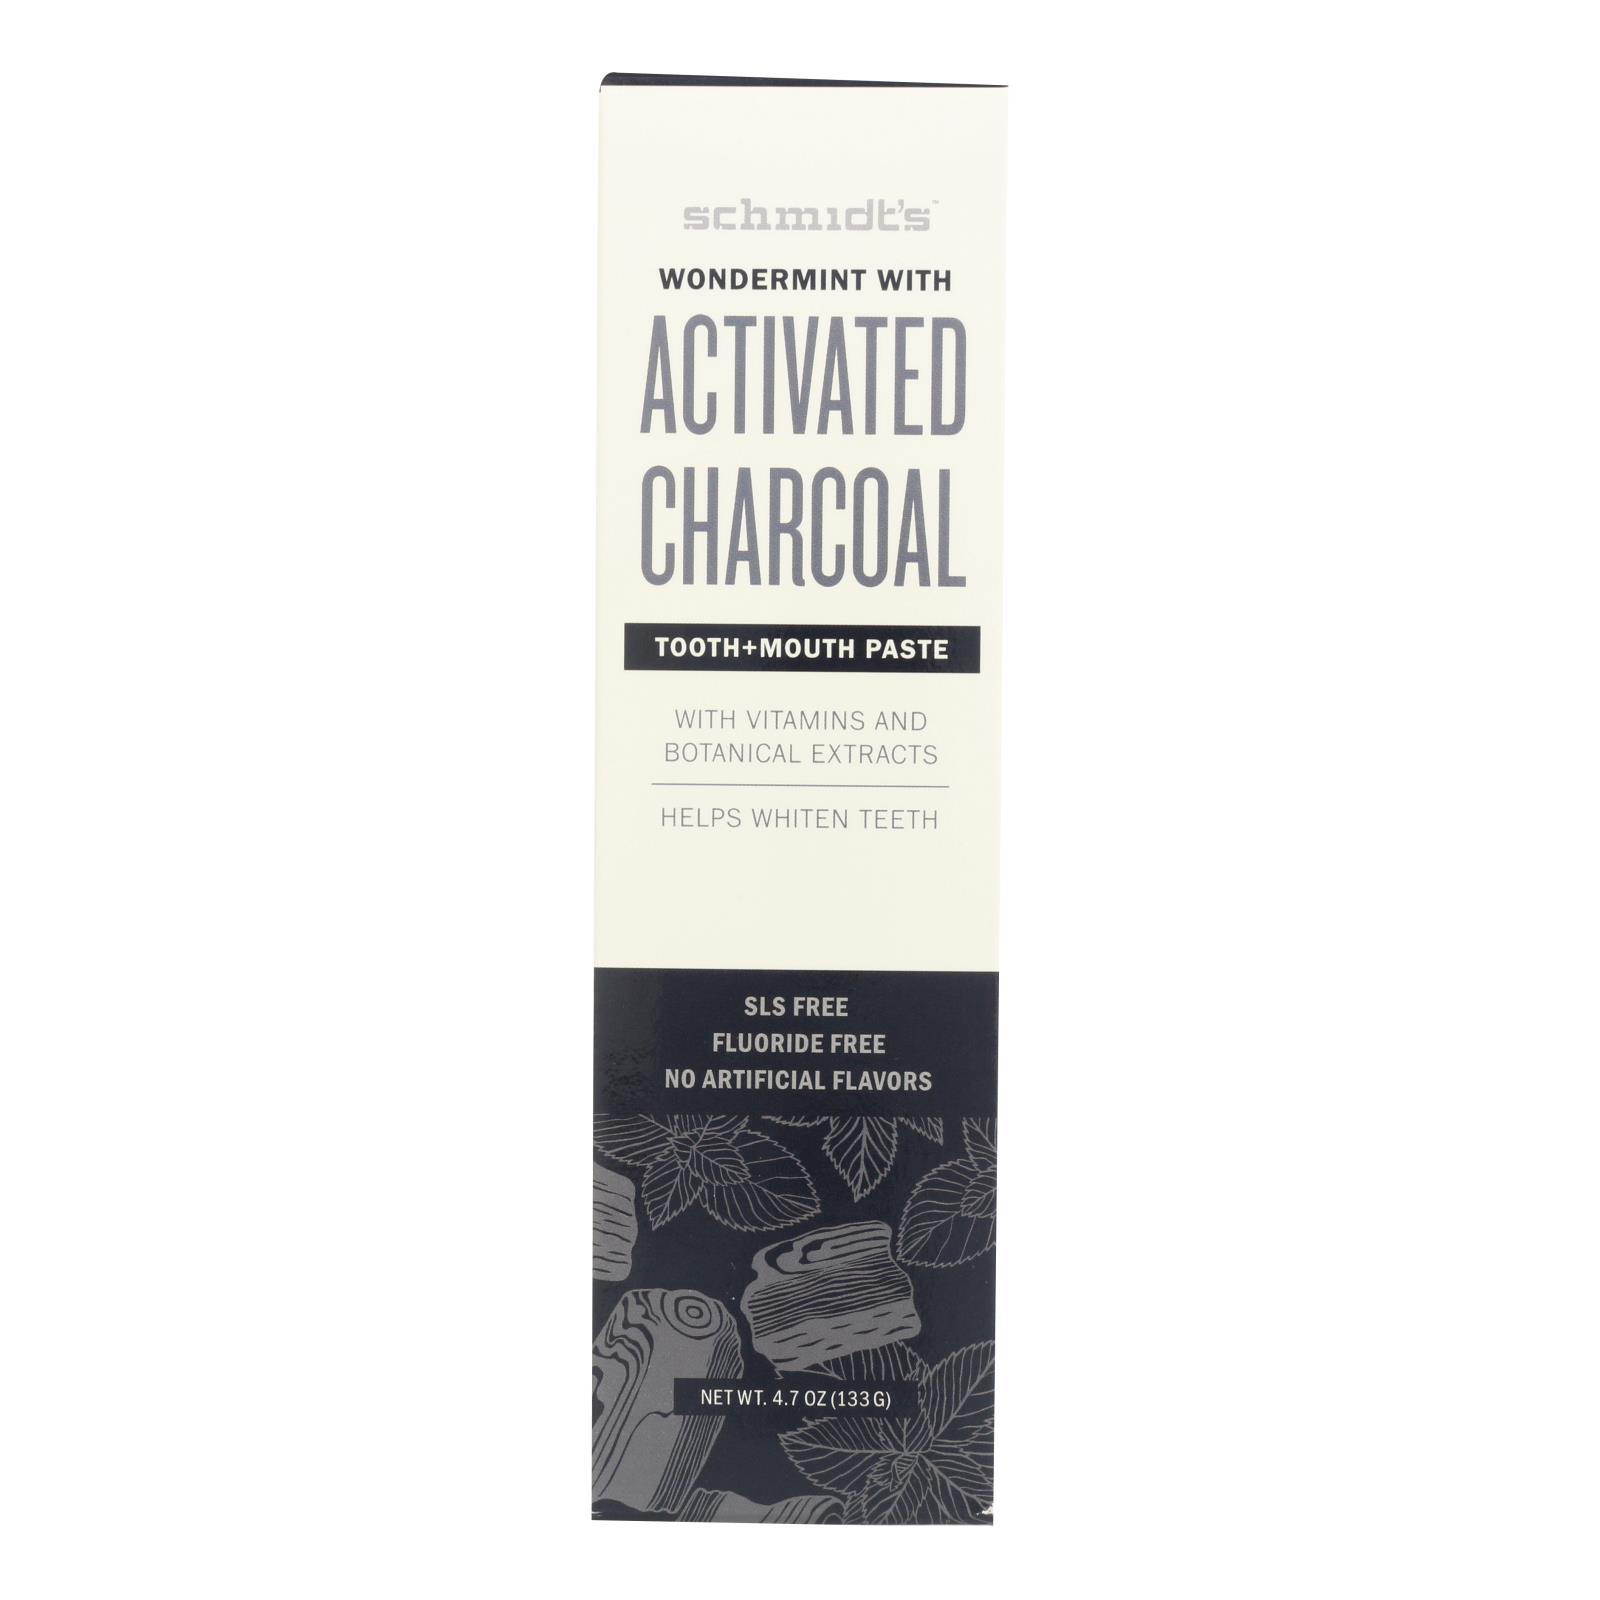 Schmidt's - Toothpaste Wondermint with Activated Charcoal - 4.7 oz.